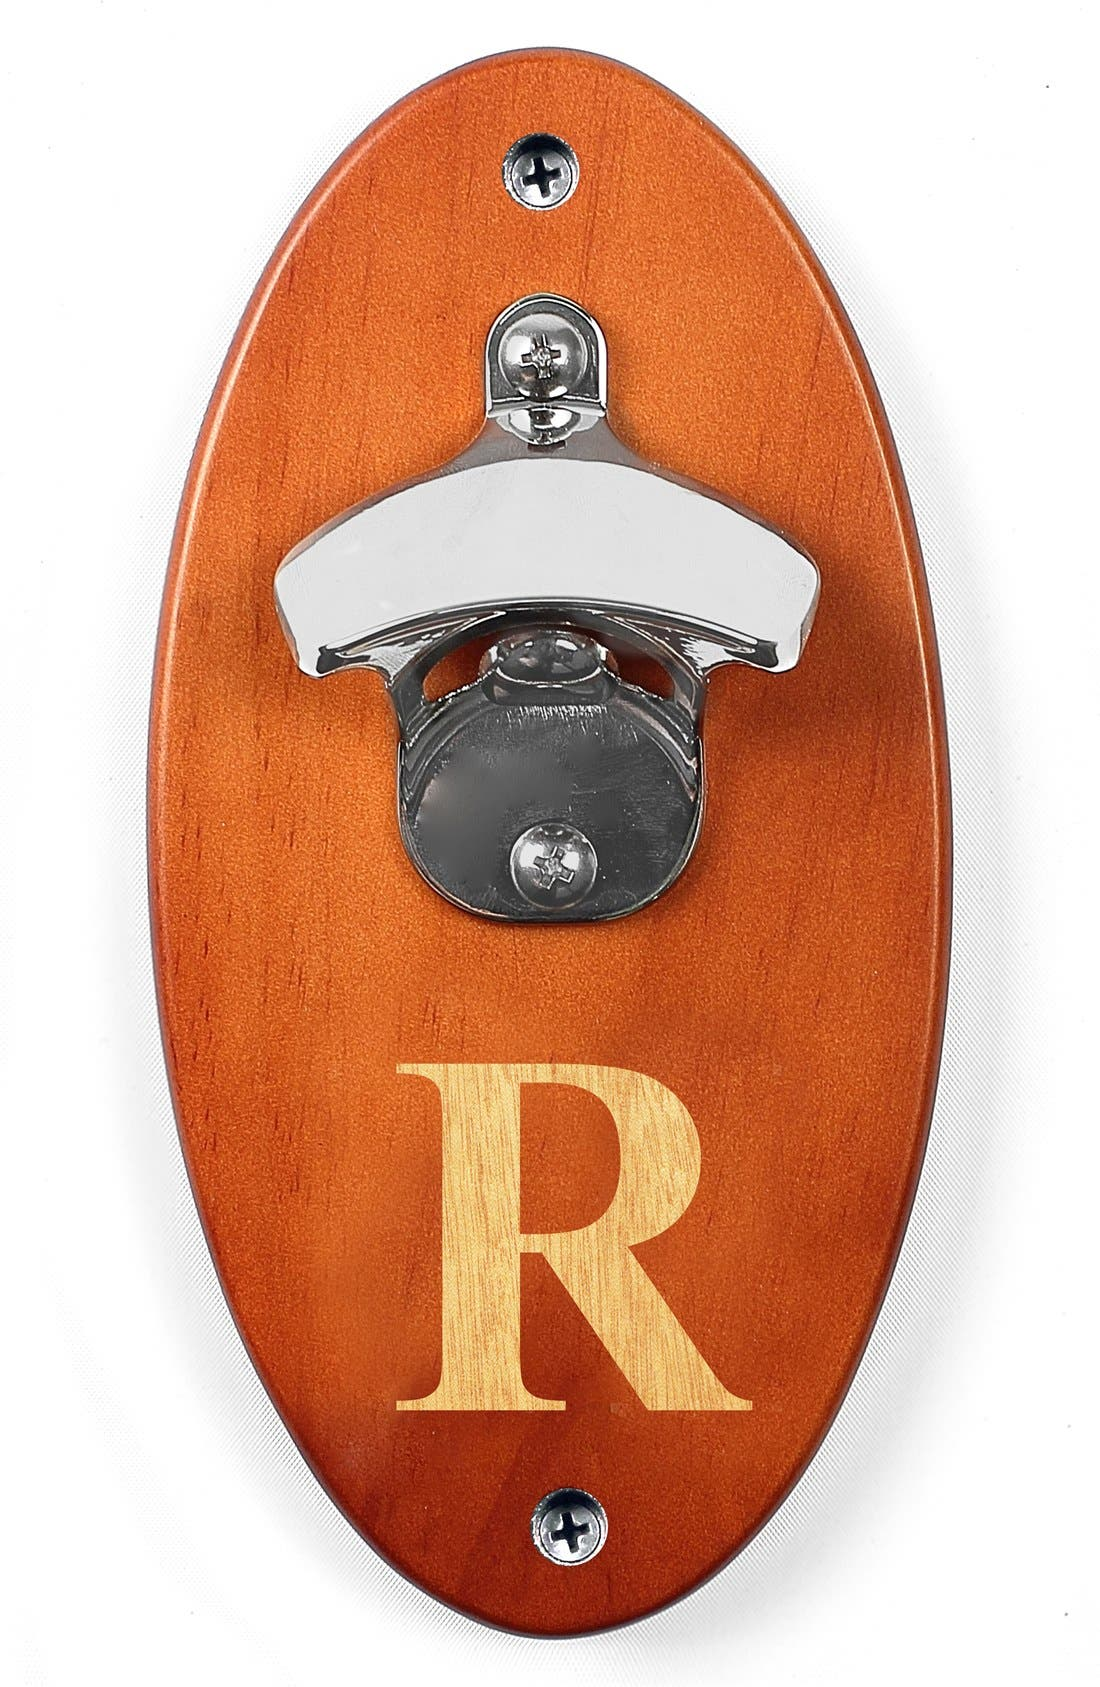 Main Image - Cathy's Concepts Personalized Wall Mounted Bottle Opener